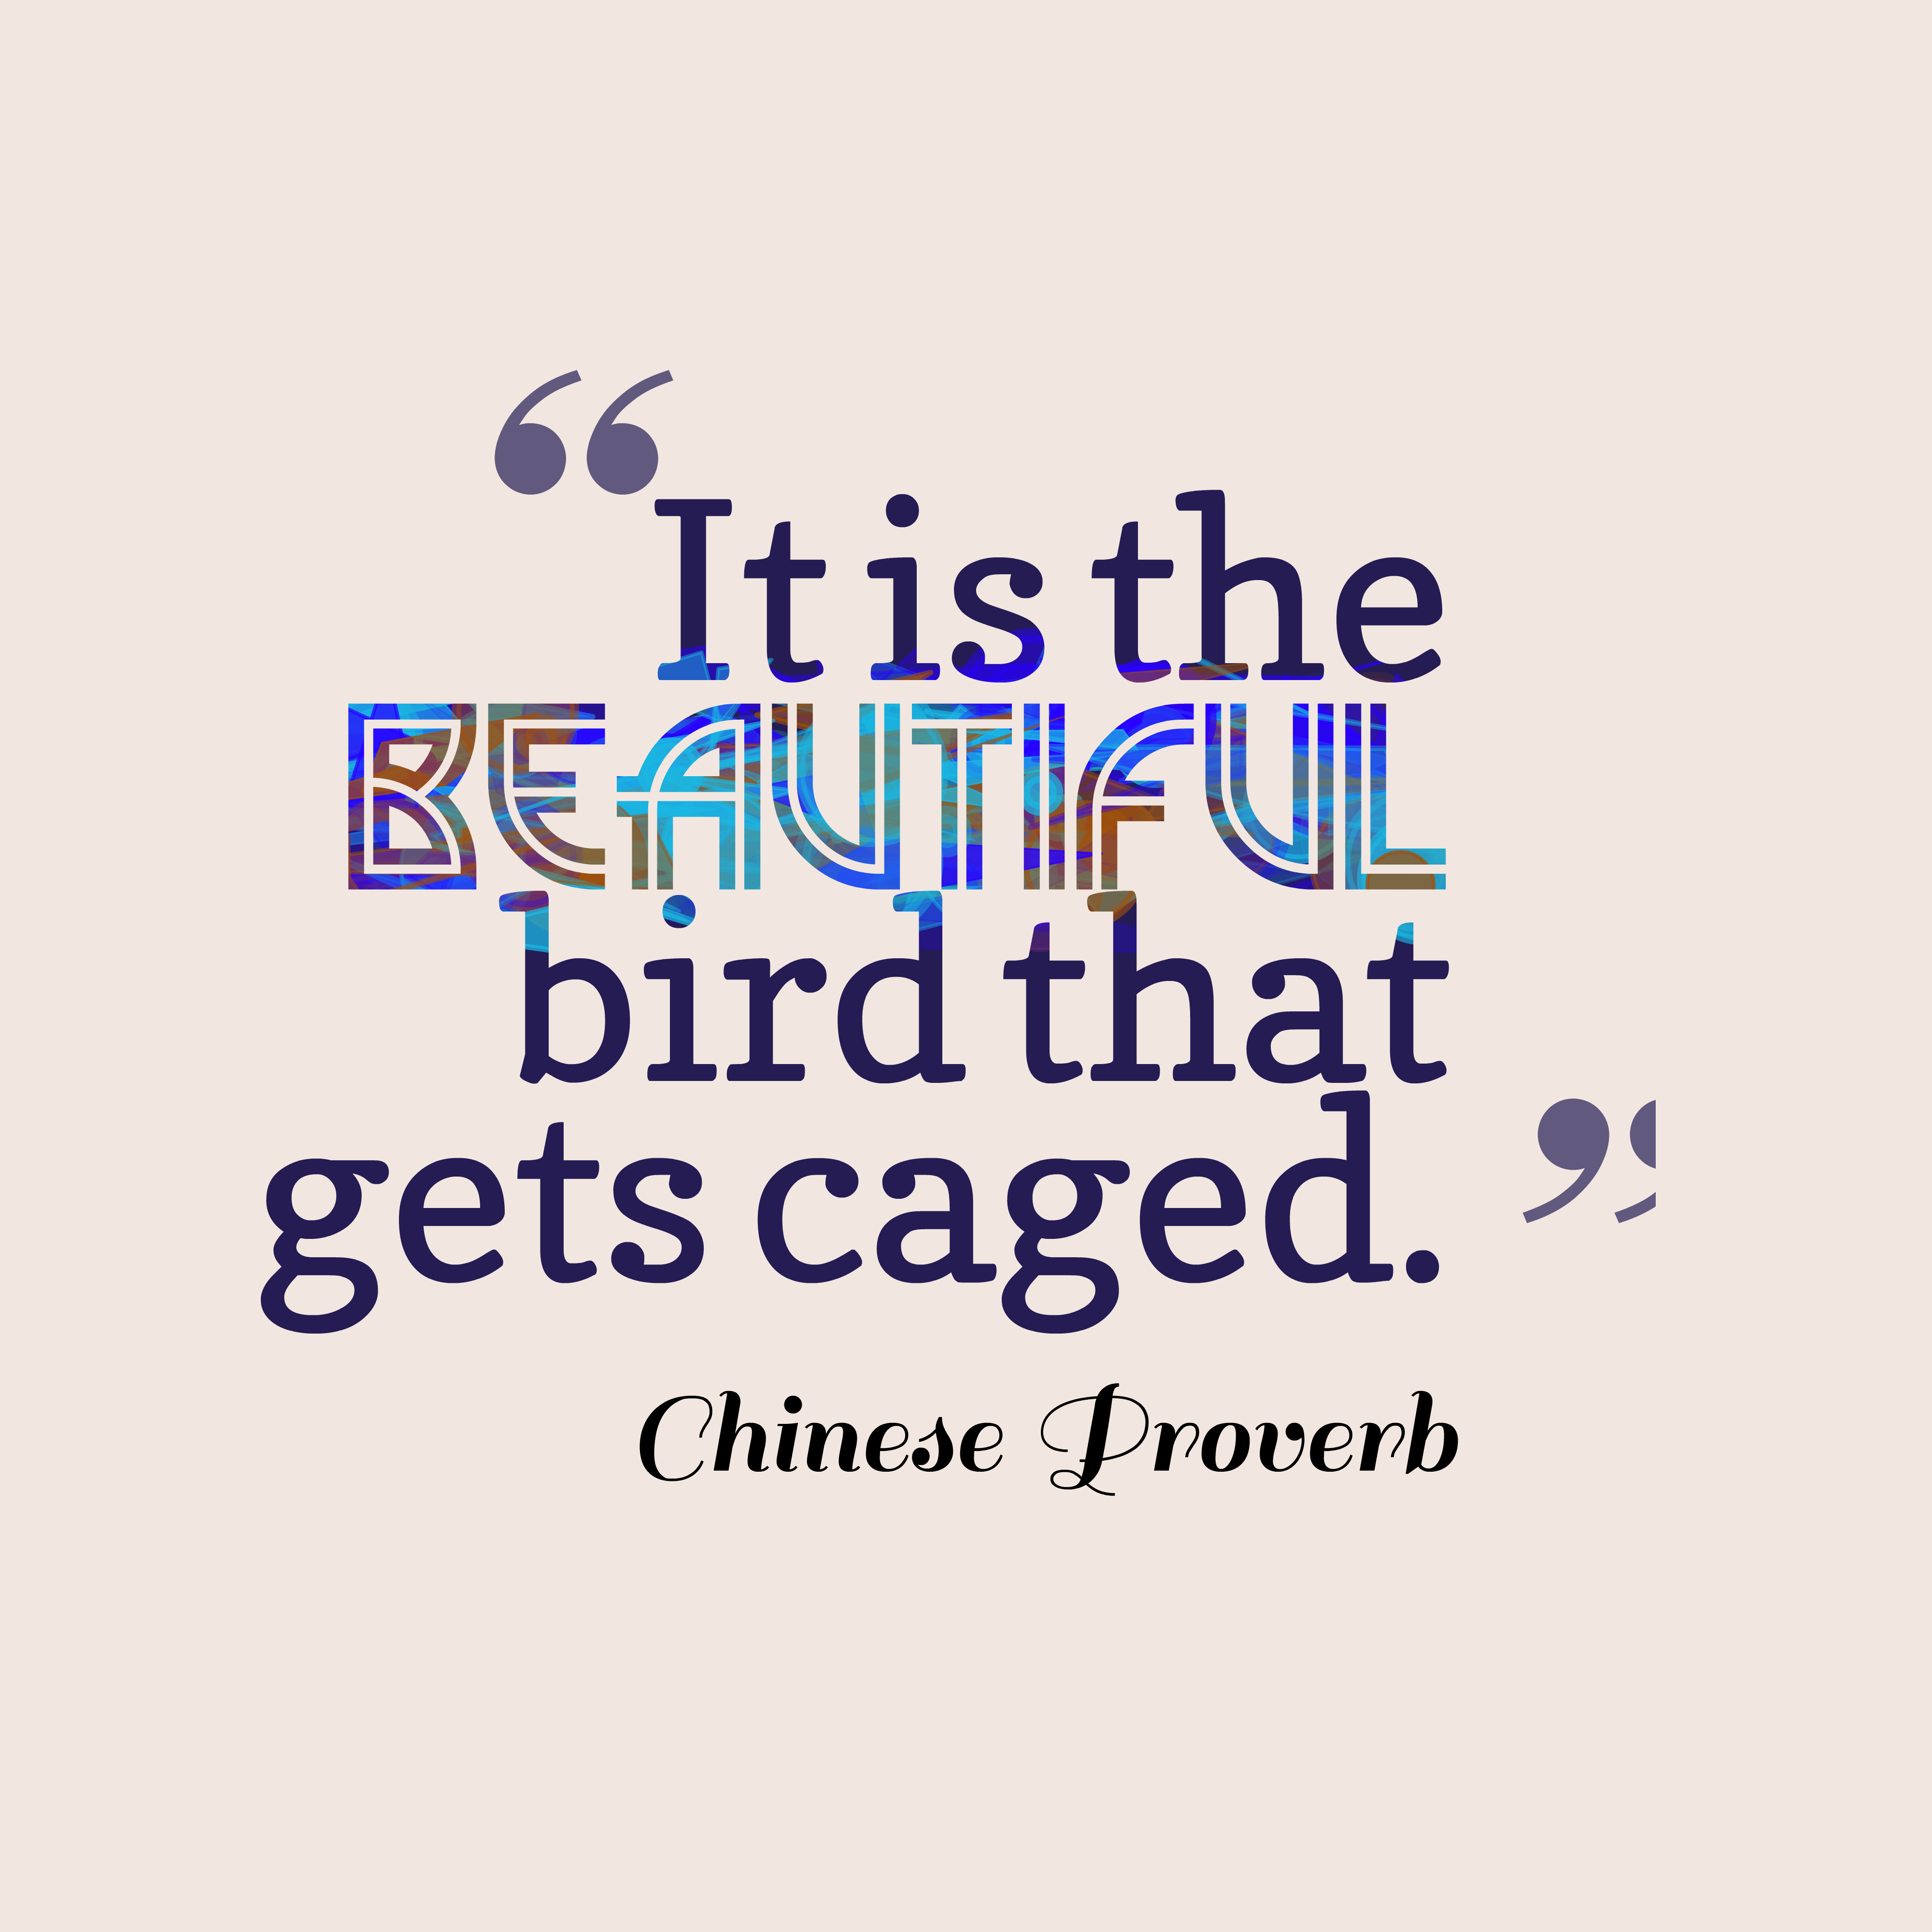 Quotes image of It is the beautiful bird that gets caged.